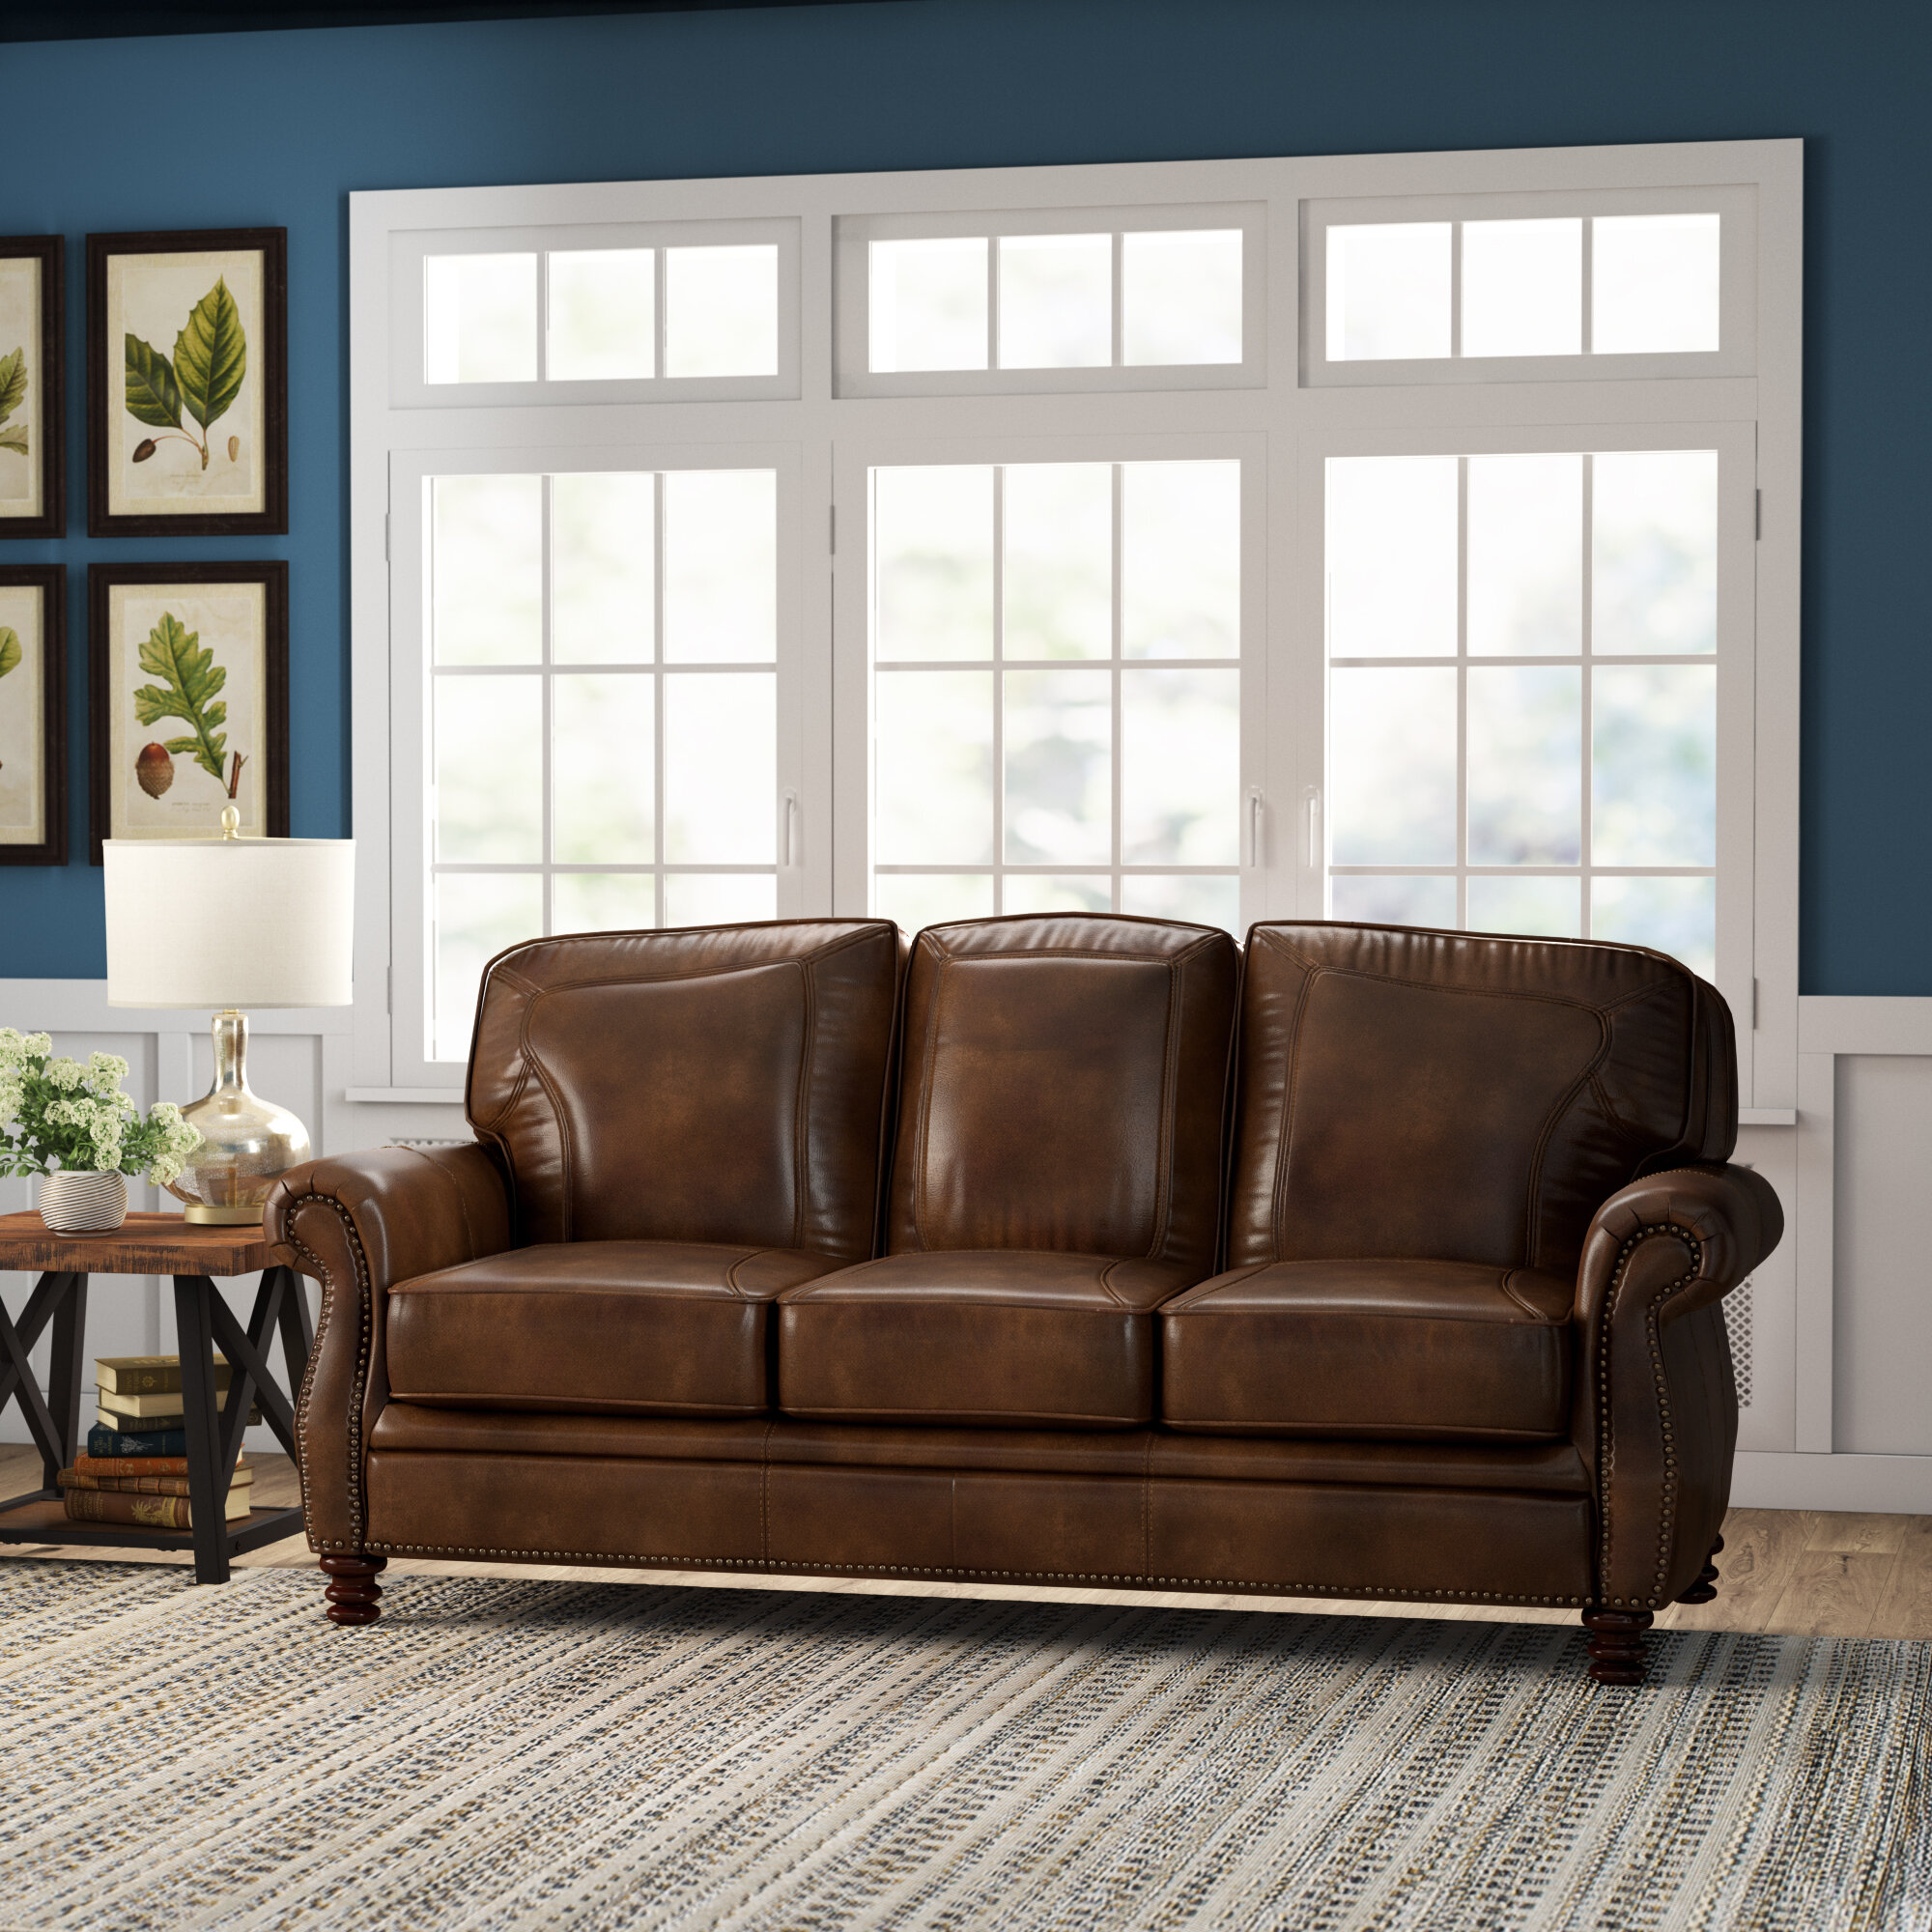 Darby Home Co Linglestown Leather Sofa